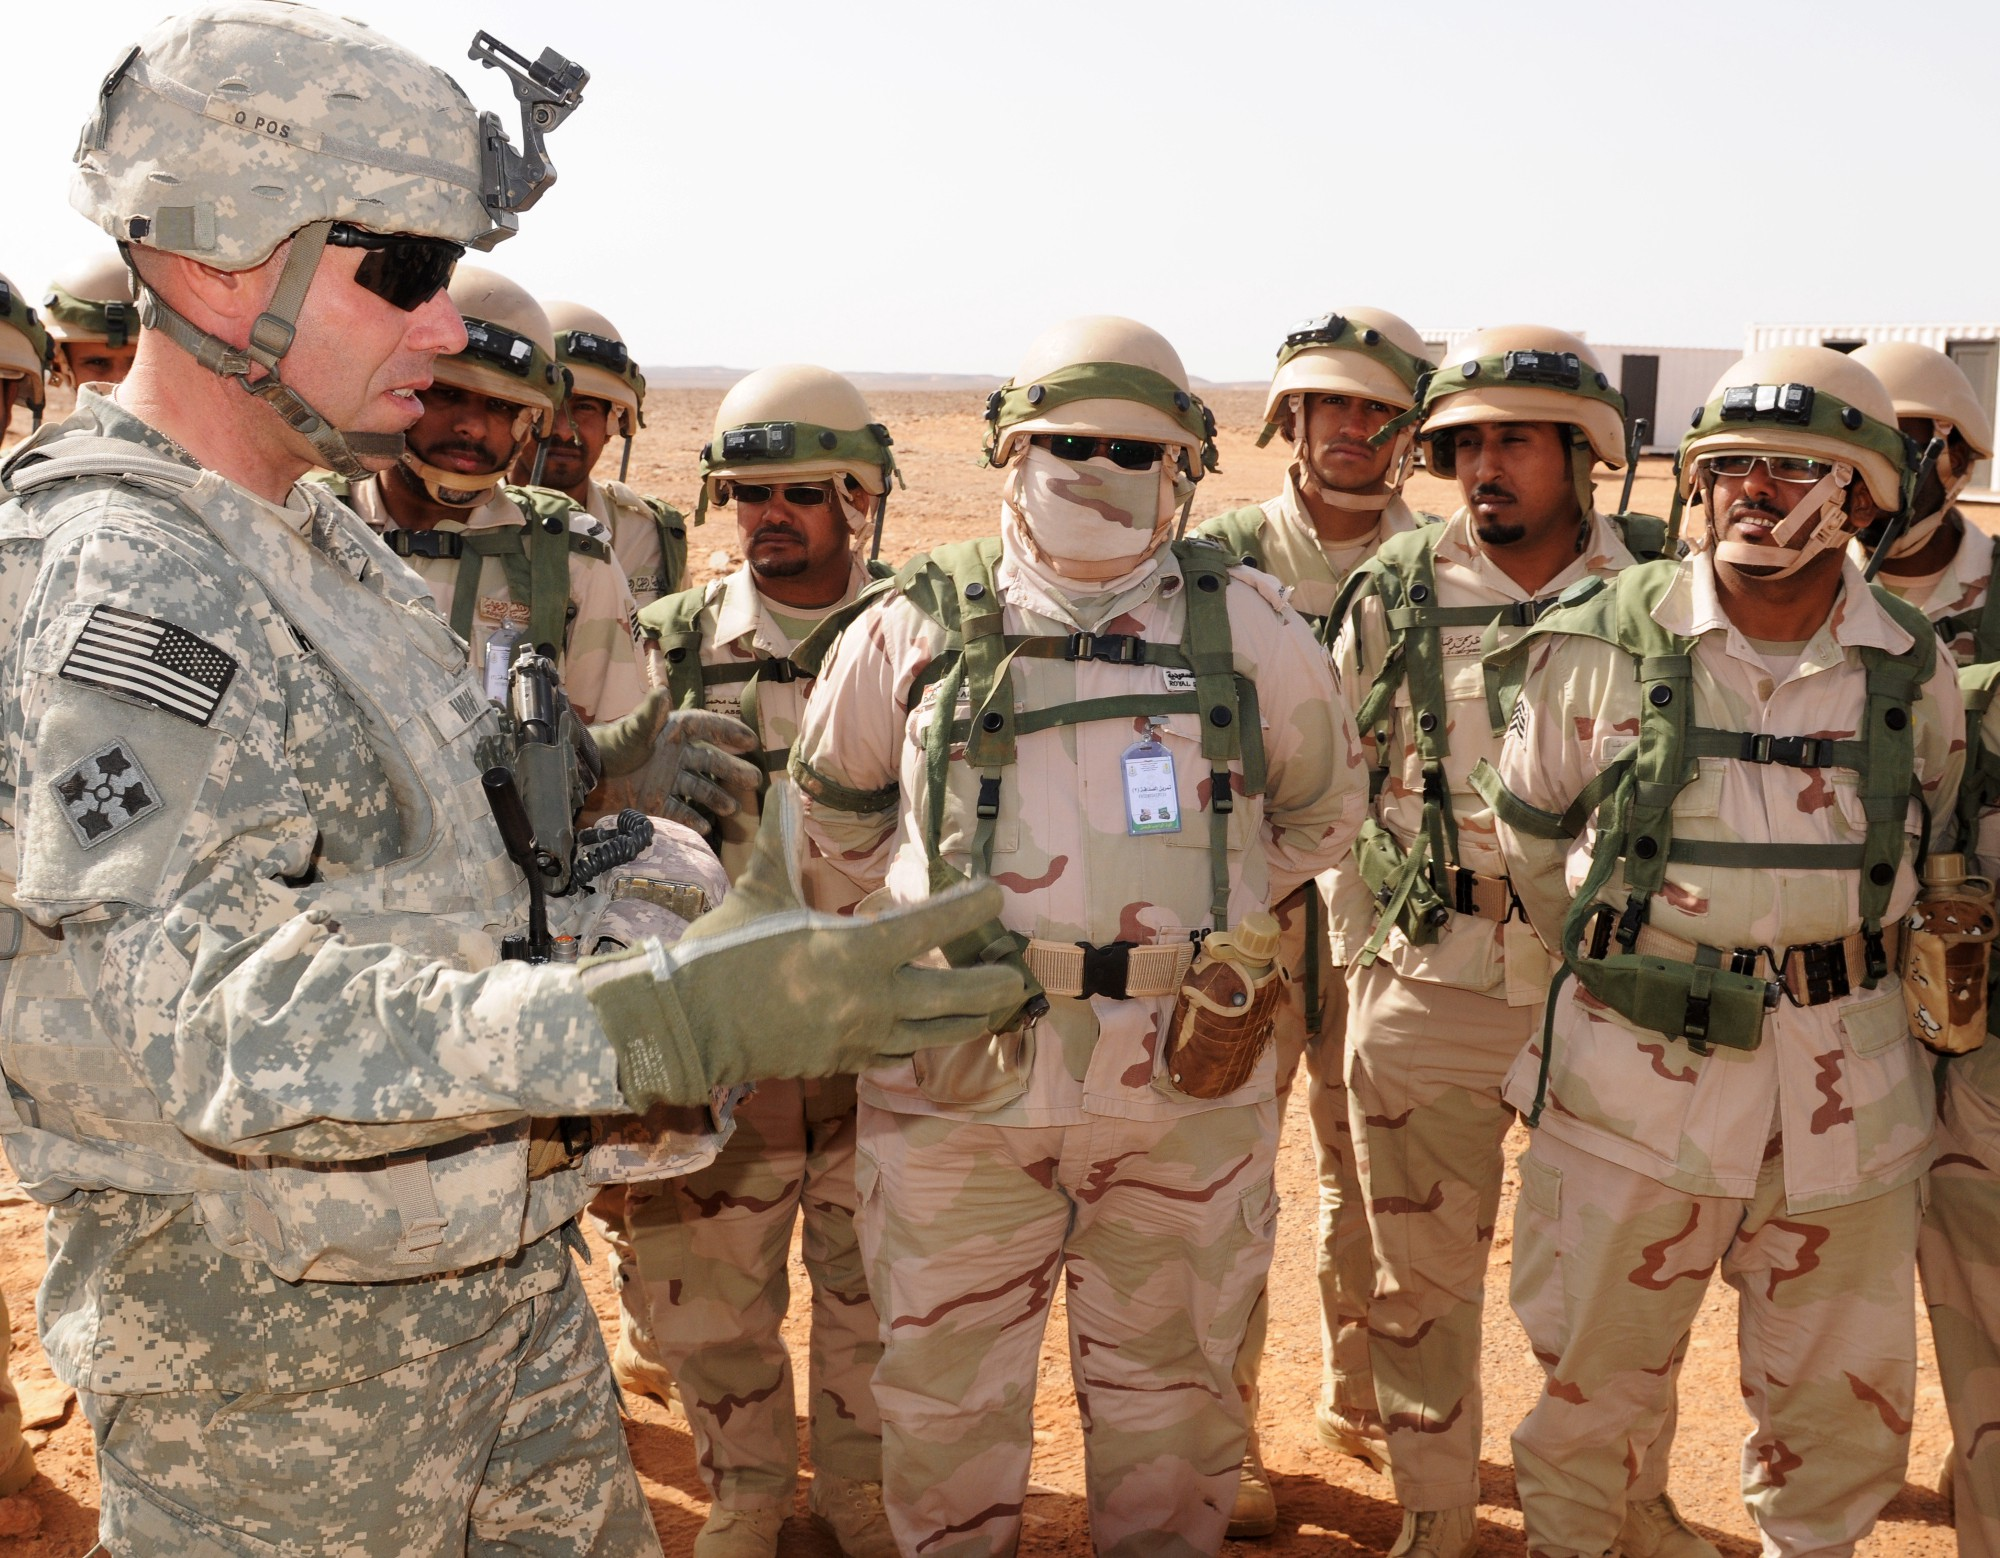 An American soldier talks with Saudi troops. Army photo